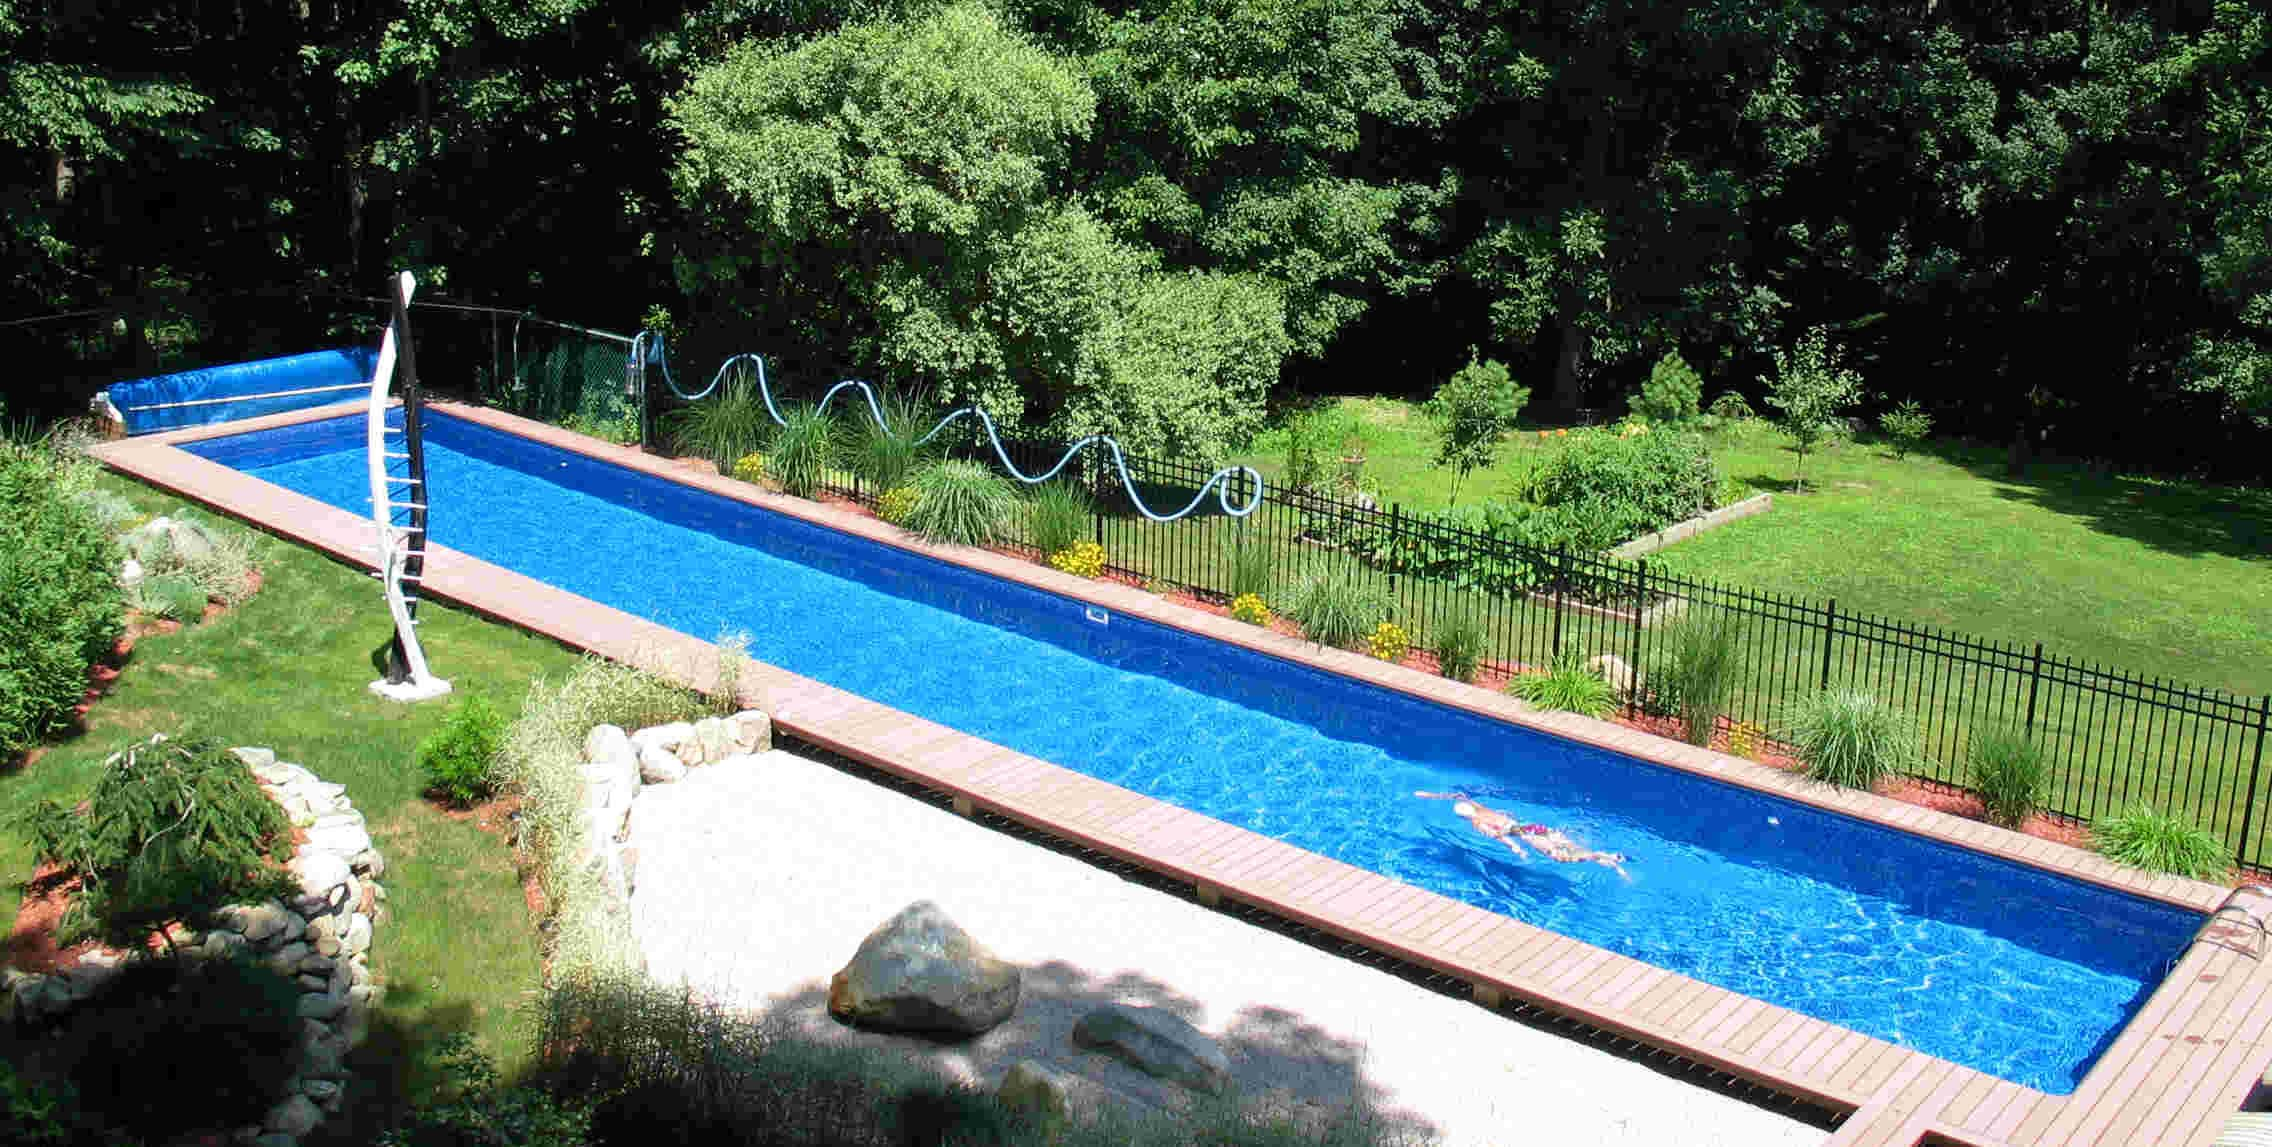 Diy inground swimming pool backyard design ideas for Backyard inground pool ideas